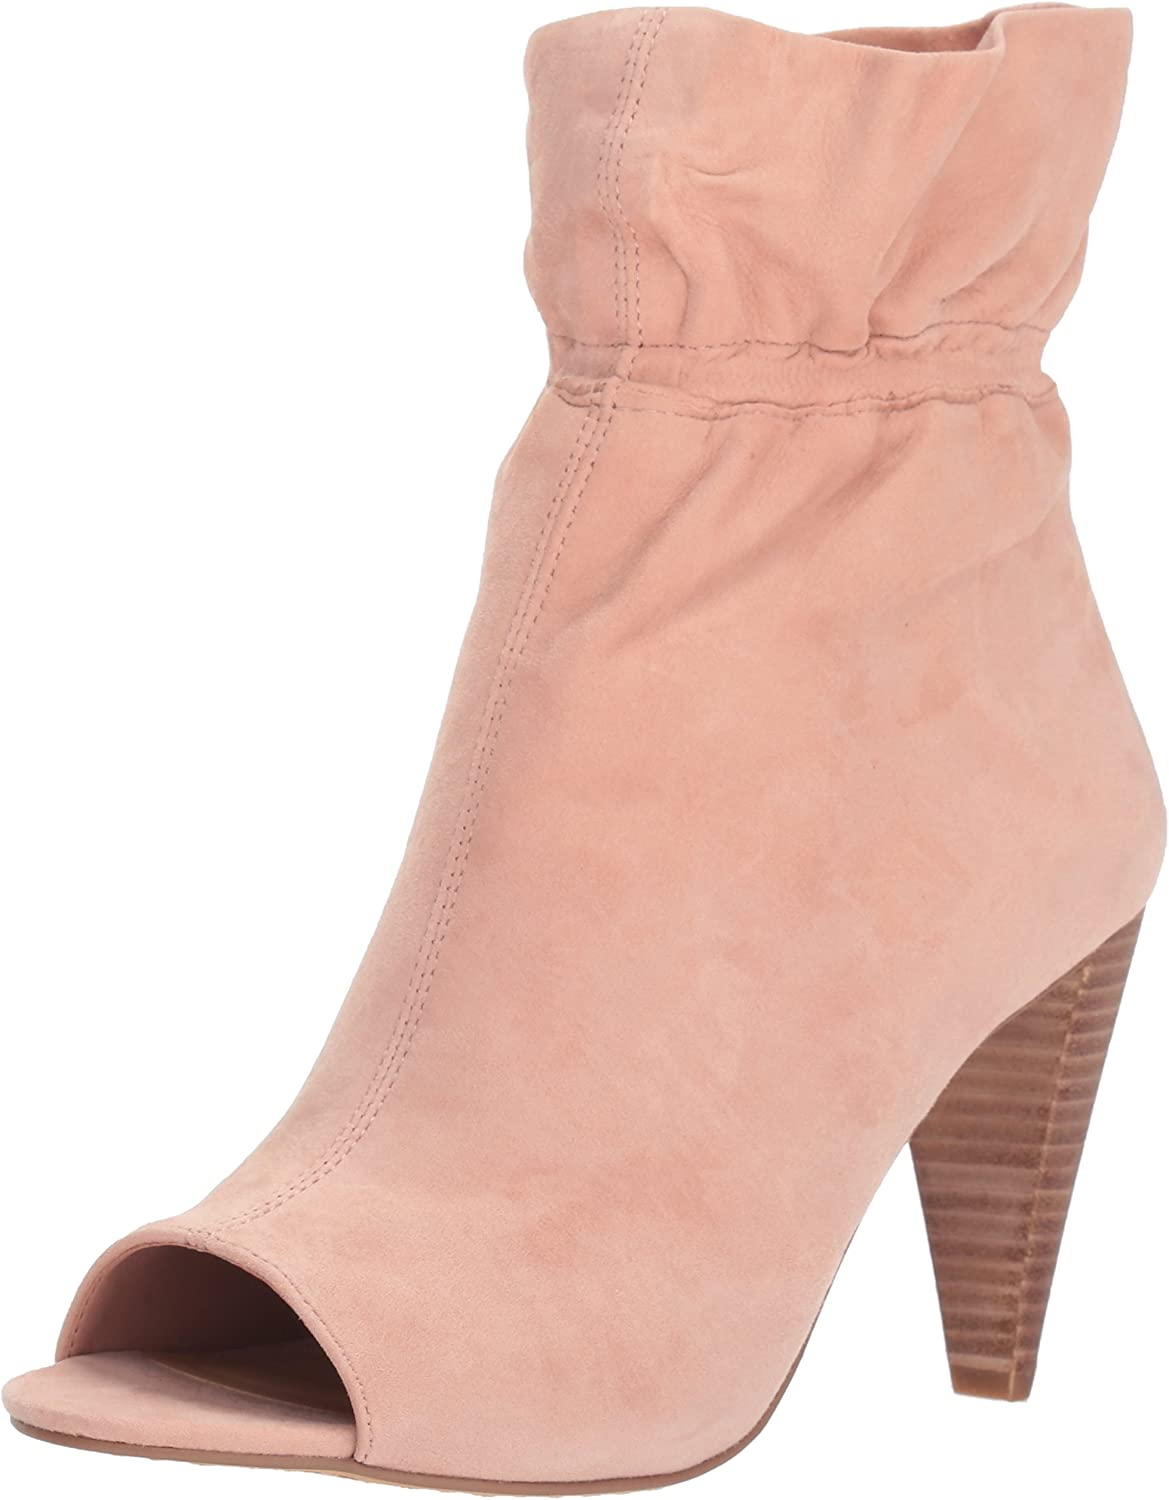 Vince Camuto Women's Addiena Ankle Boot